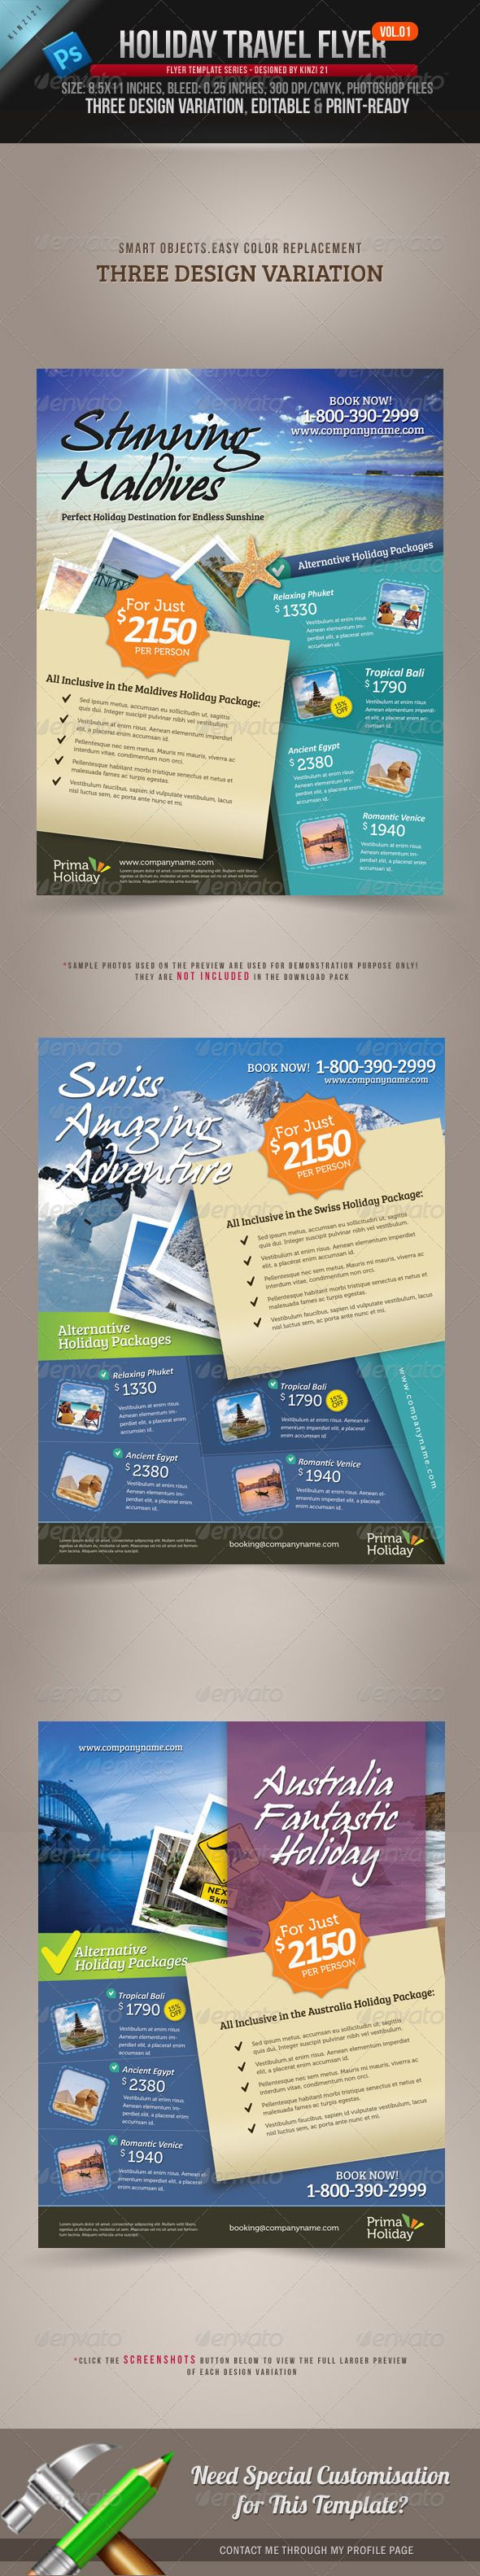 best images about holidays flyer design holiday travel flyer vol 01 holidays events here